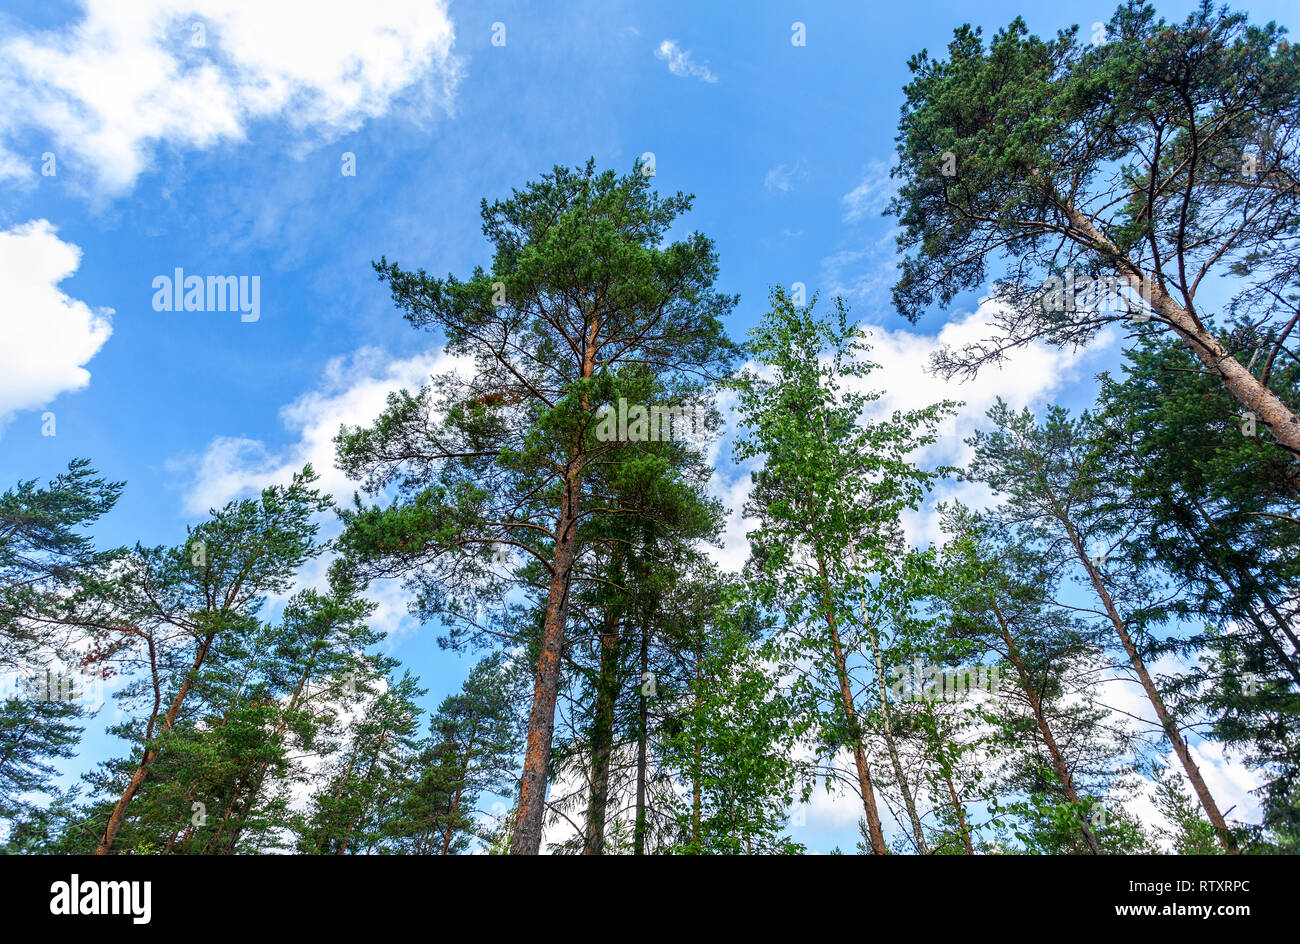 Crowns of tall pine trees in the forest against a blue sky in sunny day Stock Photo